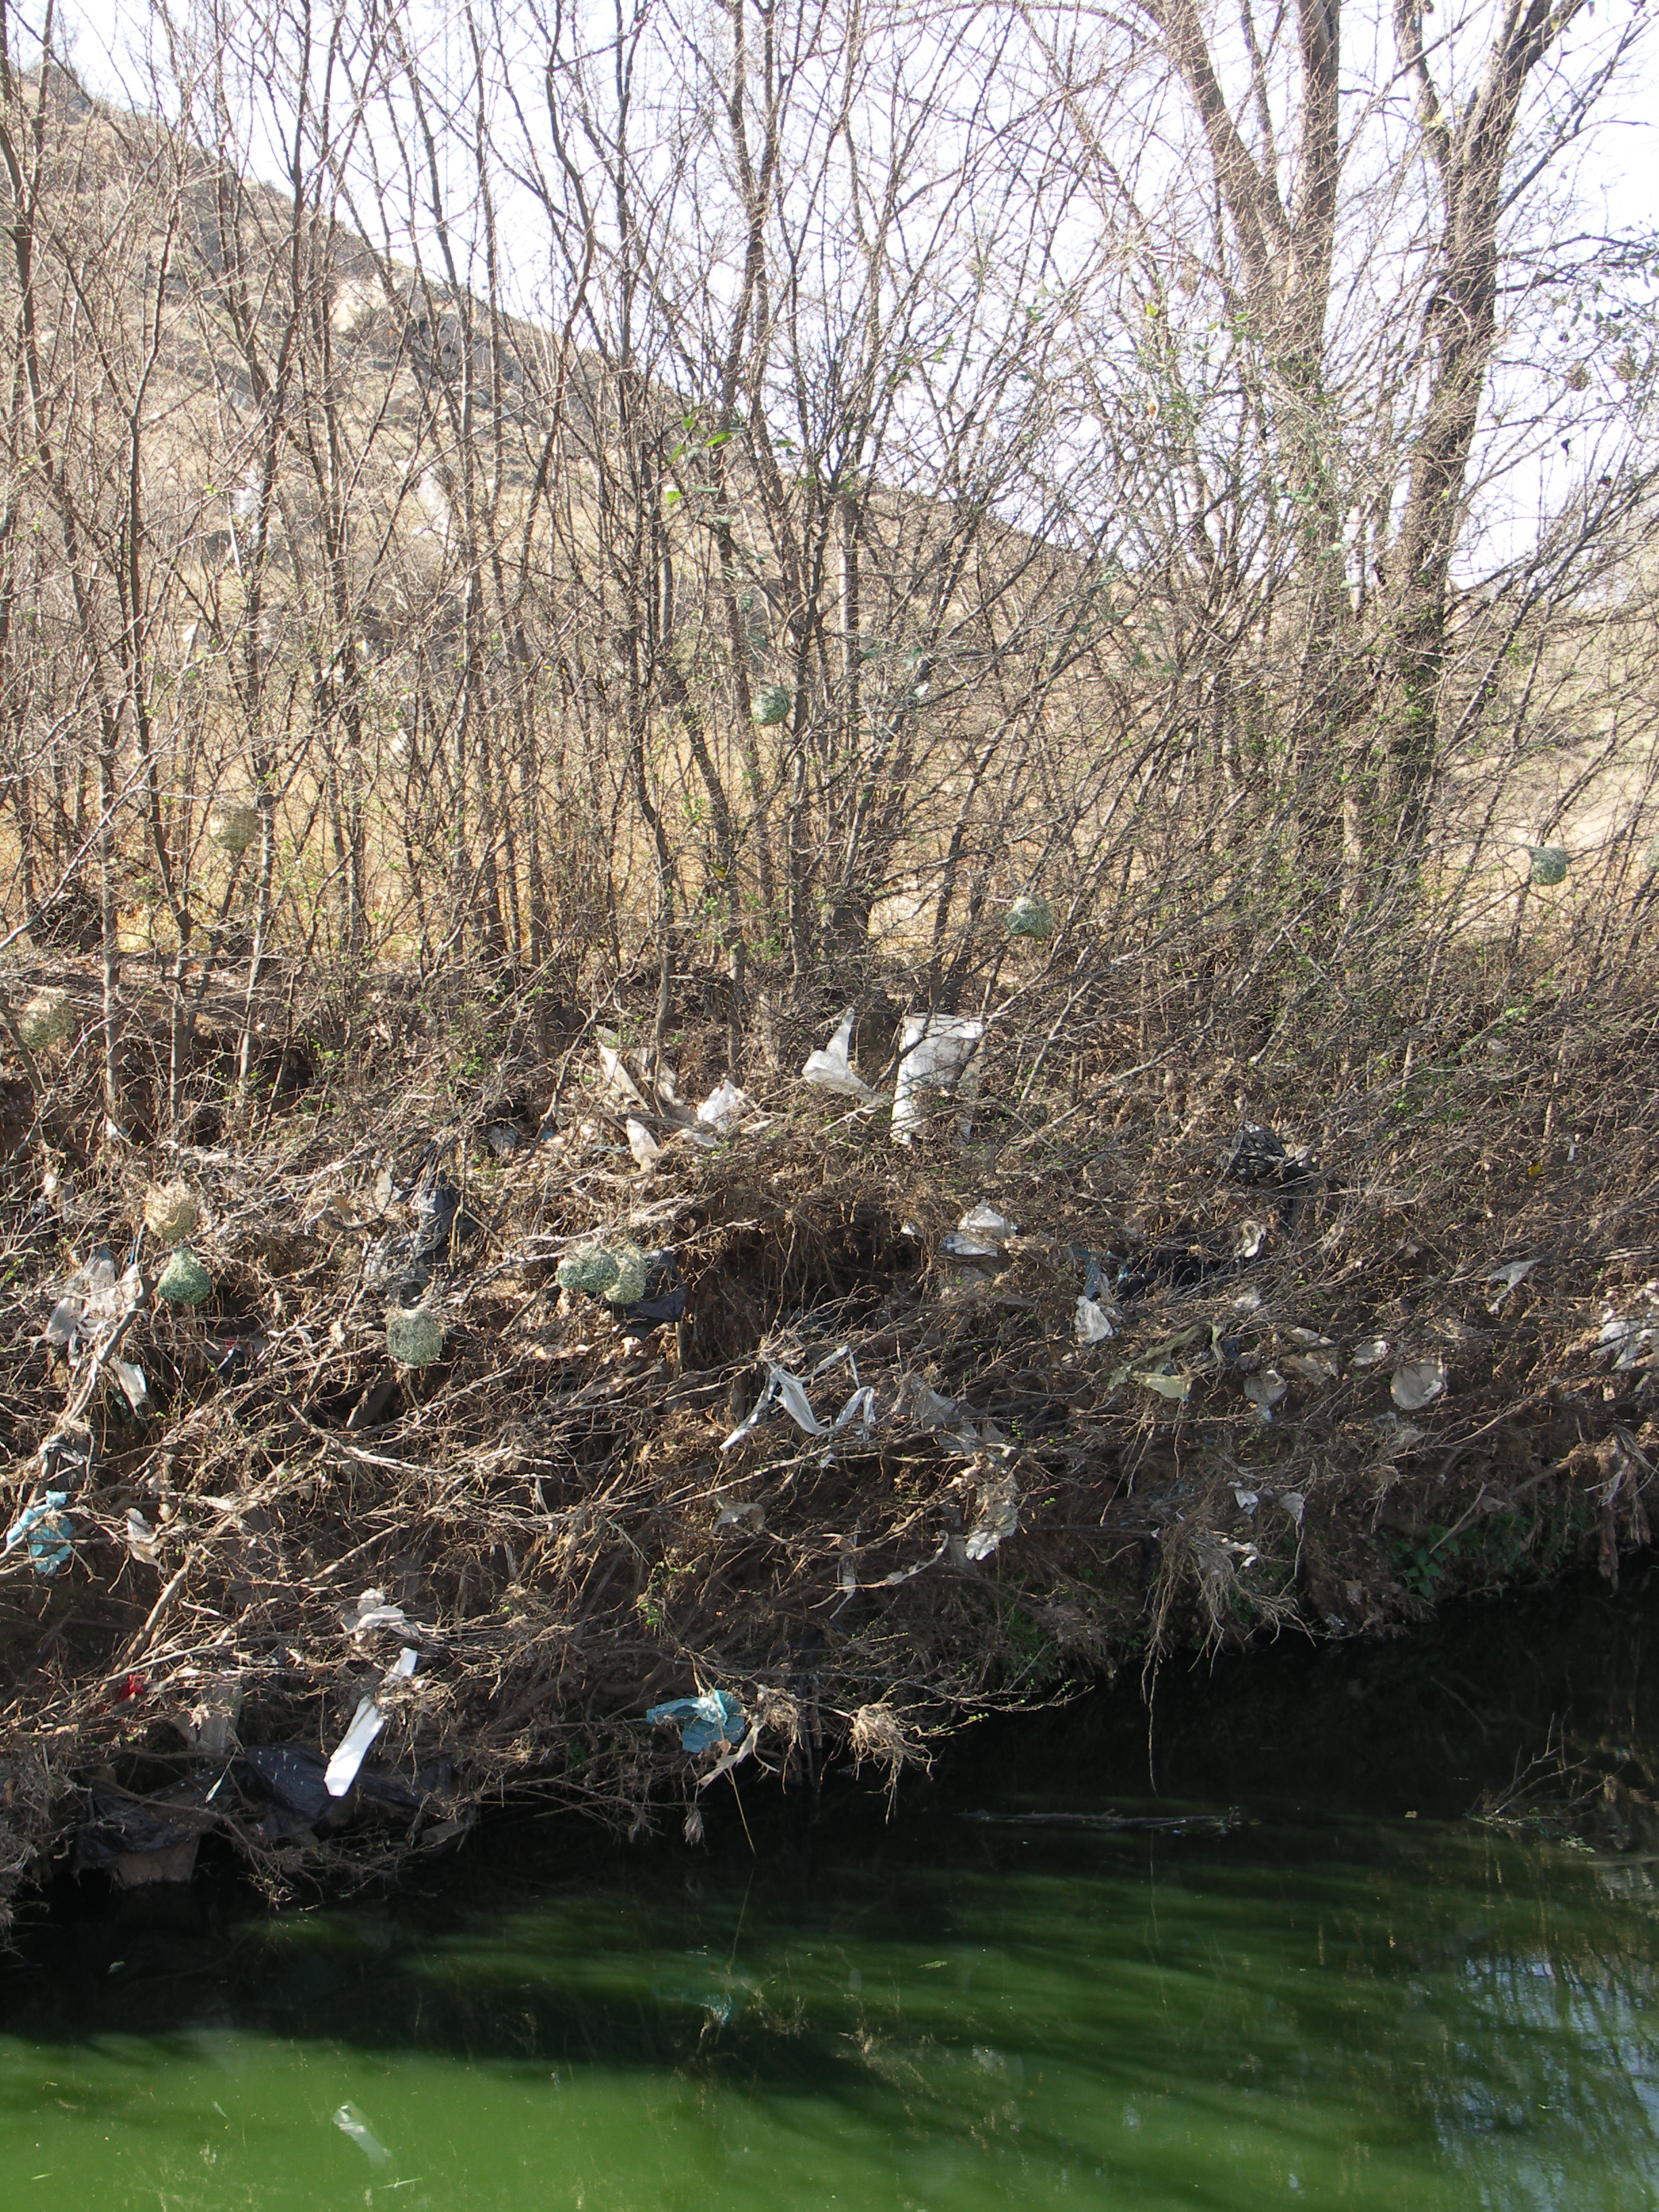 A riverbank filled with plastic bags